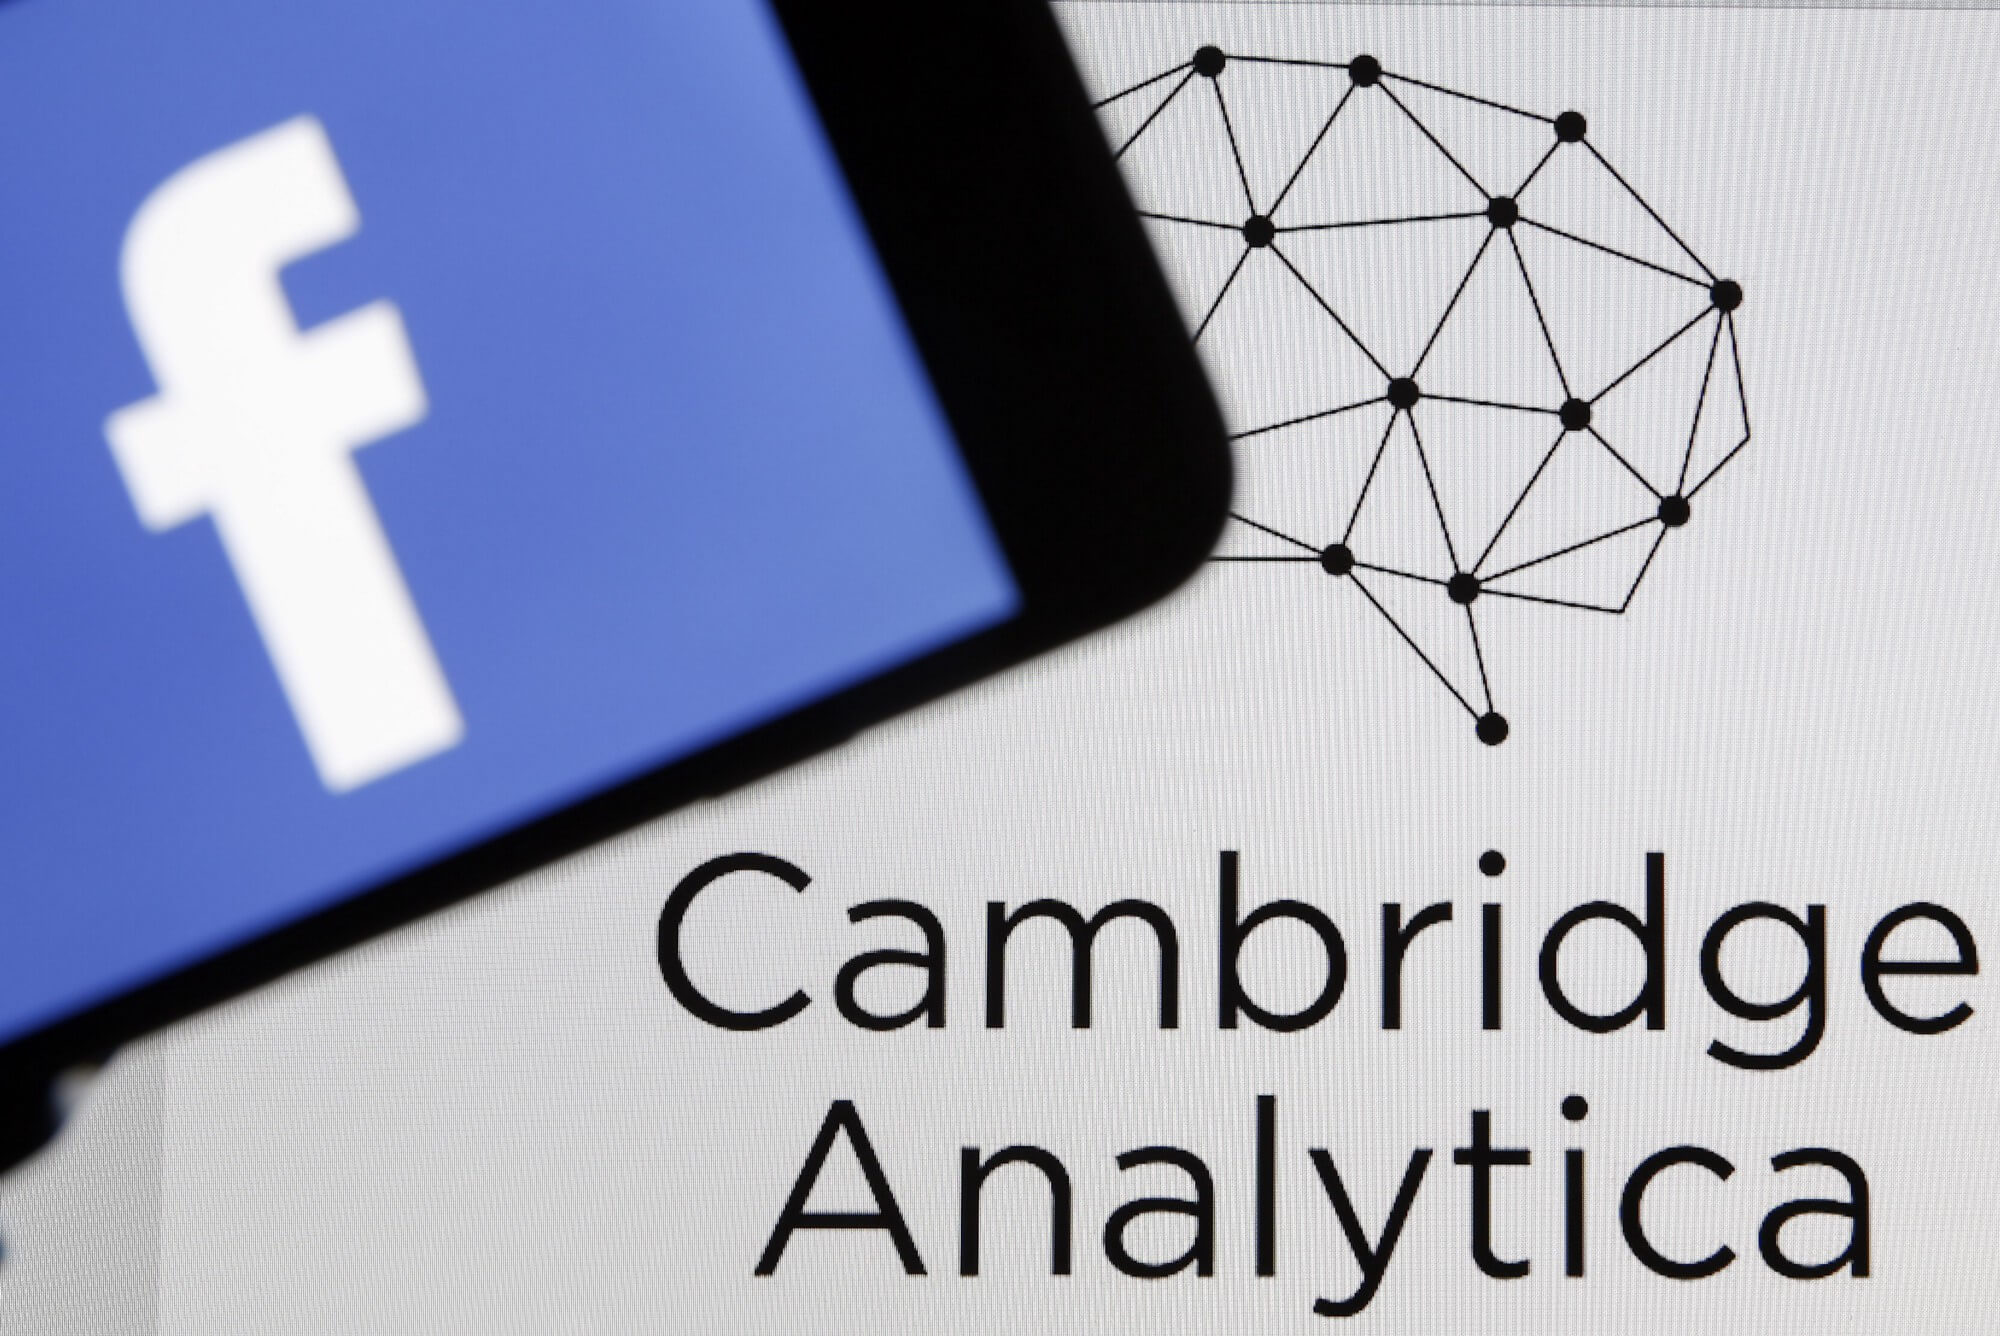 Cambridge Analytica to shut down, file for bankruptcy - TechSpot